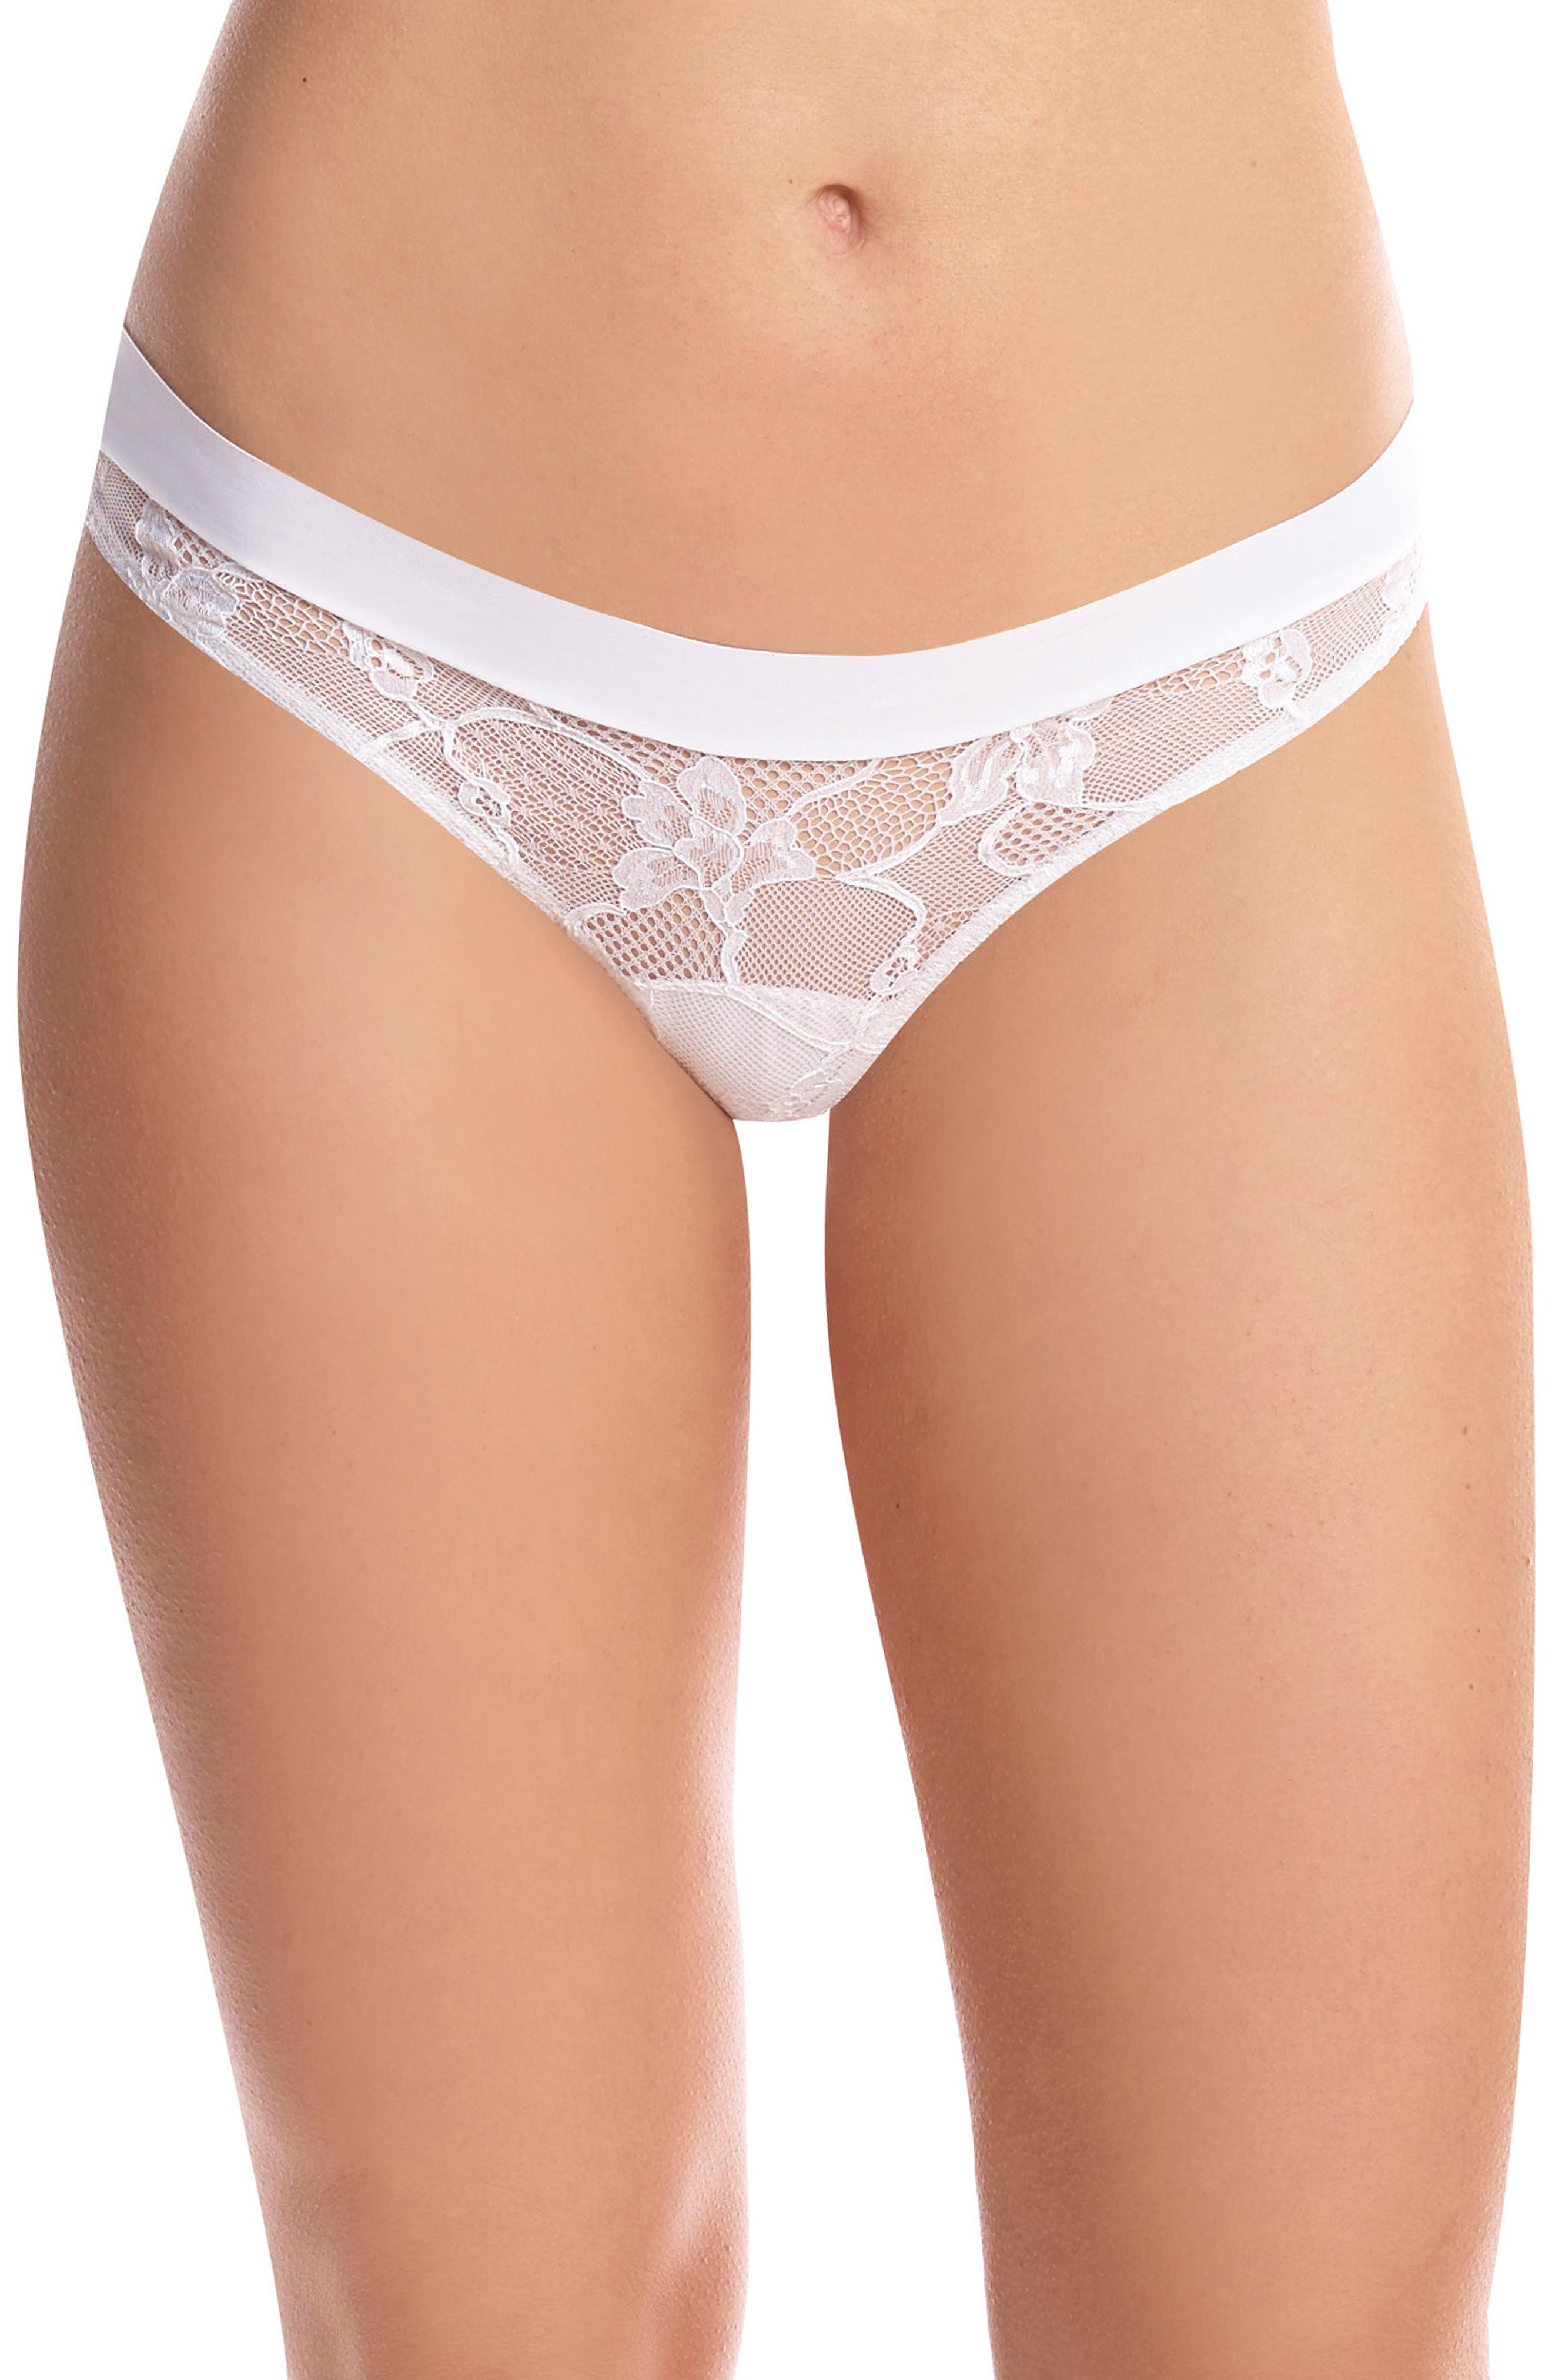 Stripped Lace Thong,                             Main thumbnail 1, color,                             White